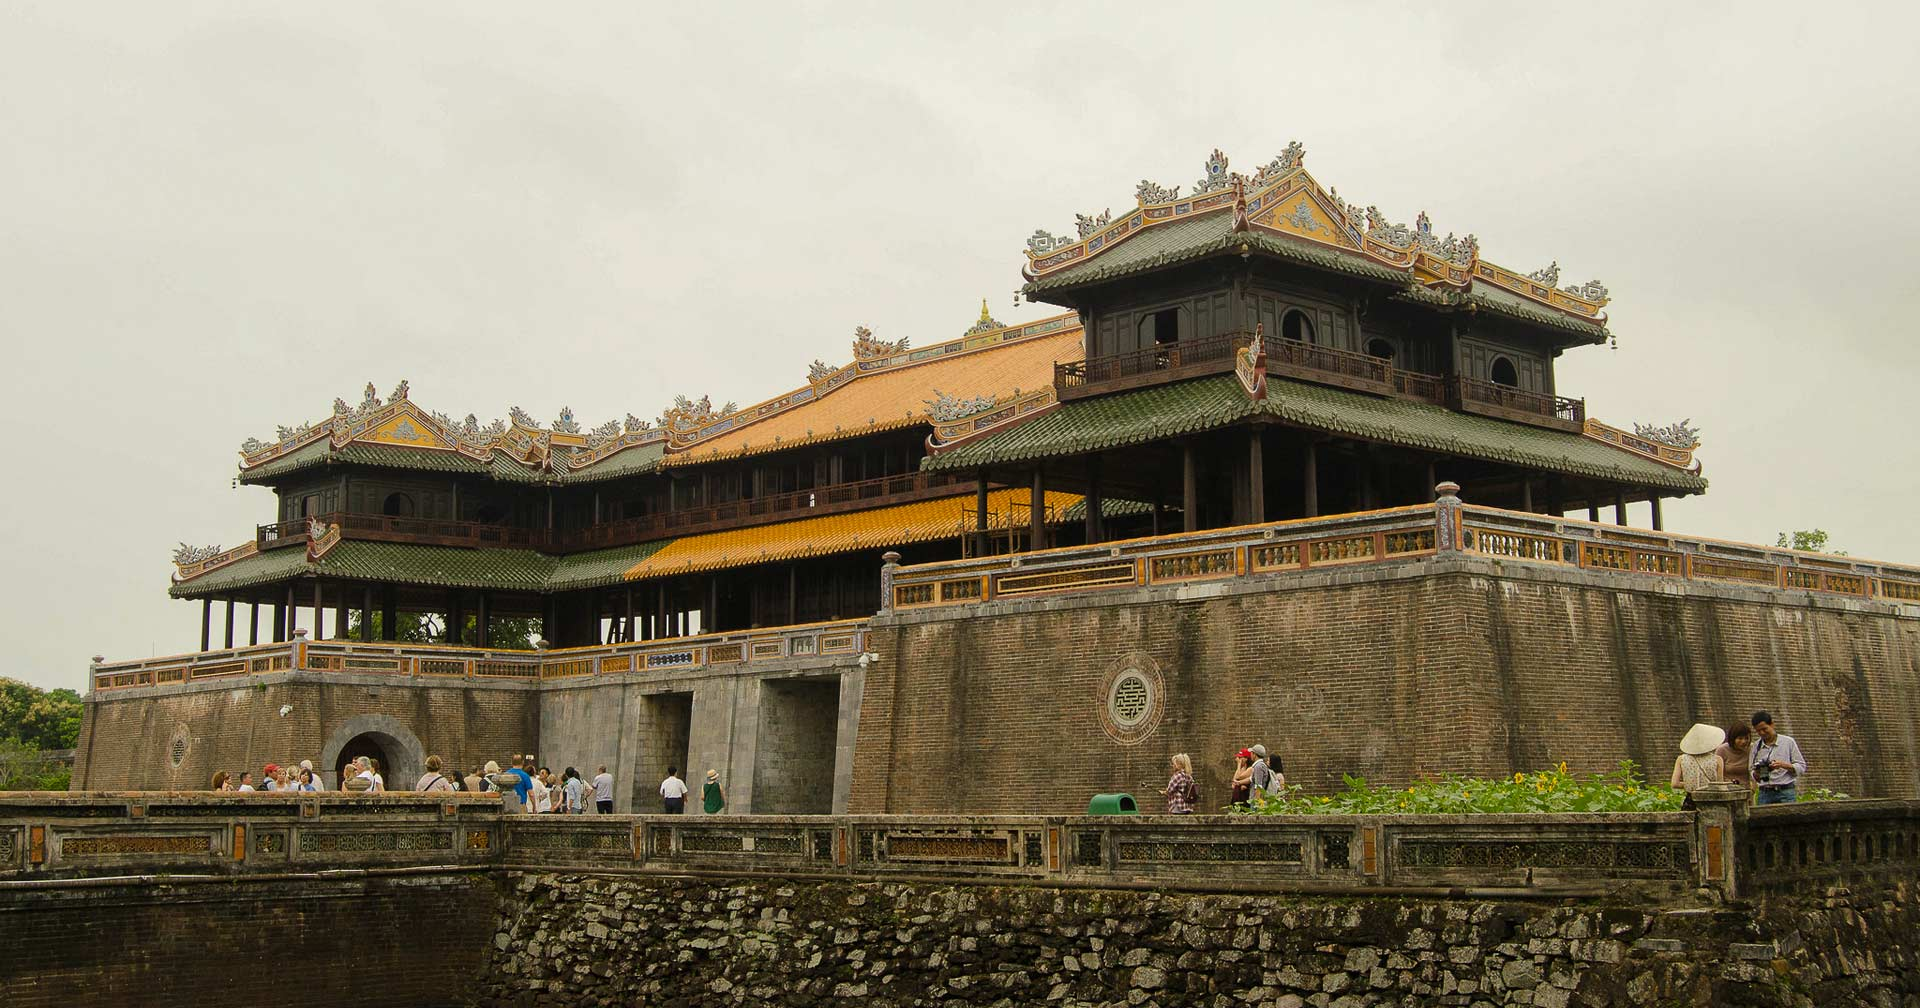 Imperial City gate in Hue